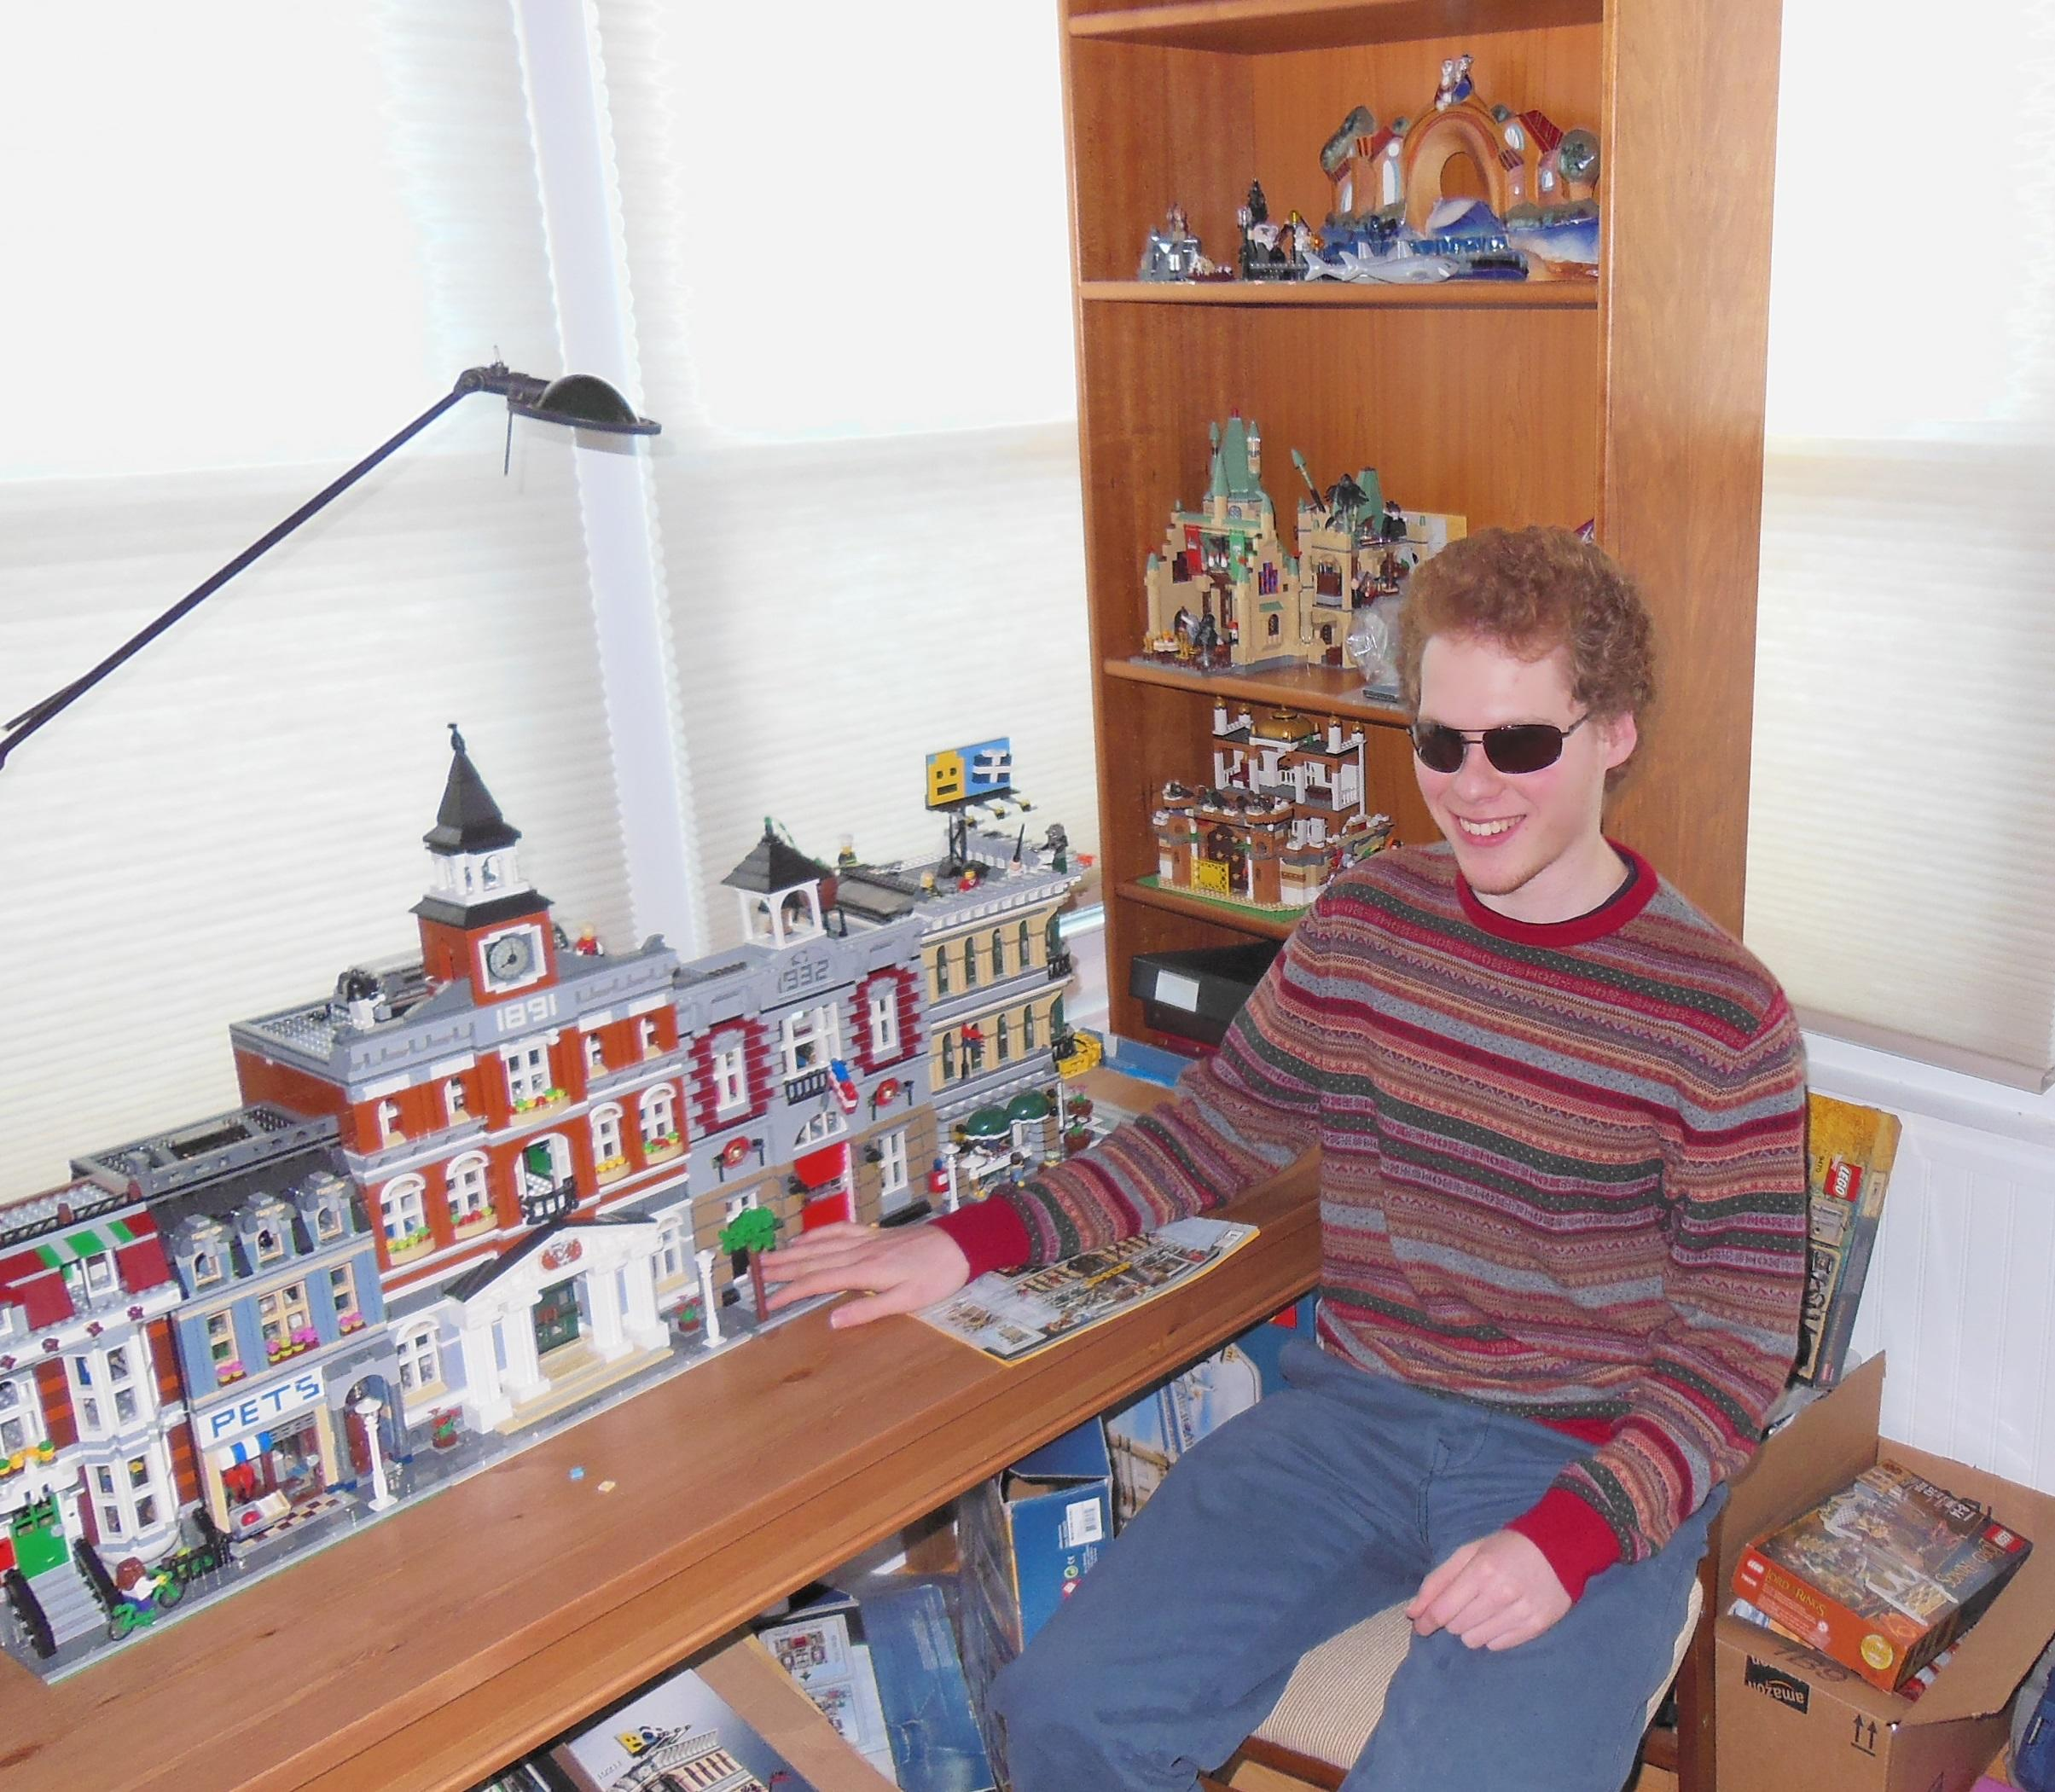 Matthew Shifrin created a website called LEGO for the Blind, which offers text-based instructions for blind LEGO builders. (Photo: Courtesy of Matthew Shifrin)